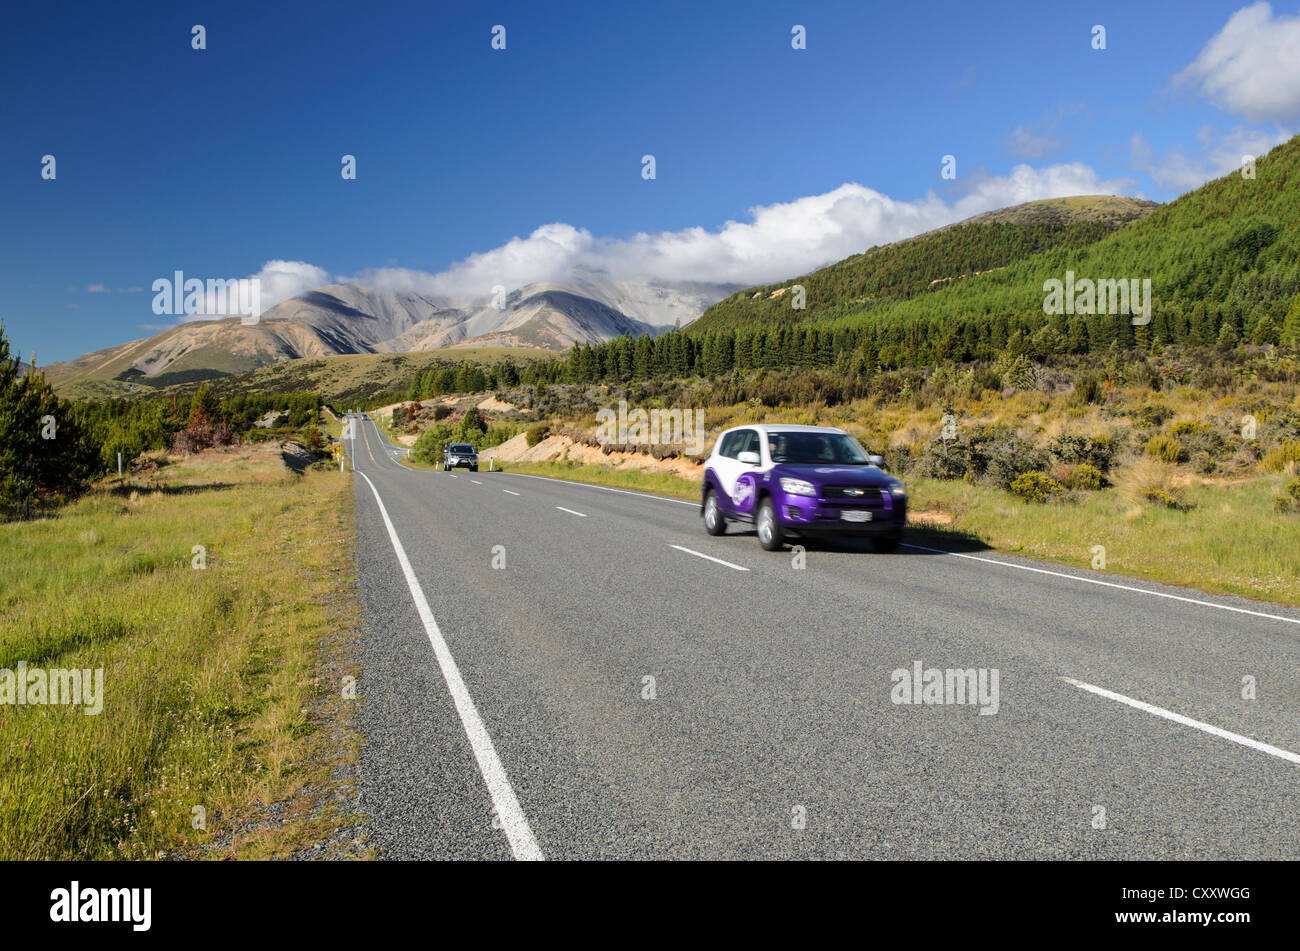 Two cars driving on a country road, driving on the left, Arthur's Pass Road, South Island, New Zealand, Oceania - Stock Image